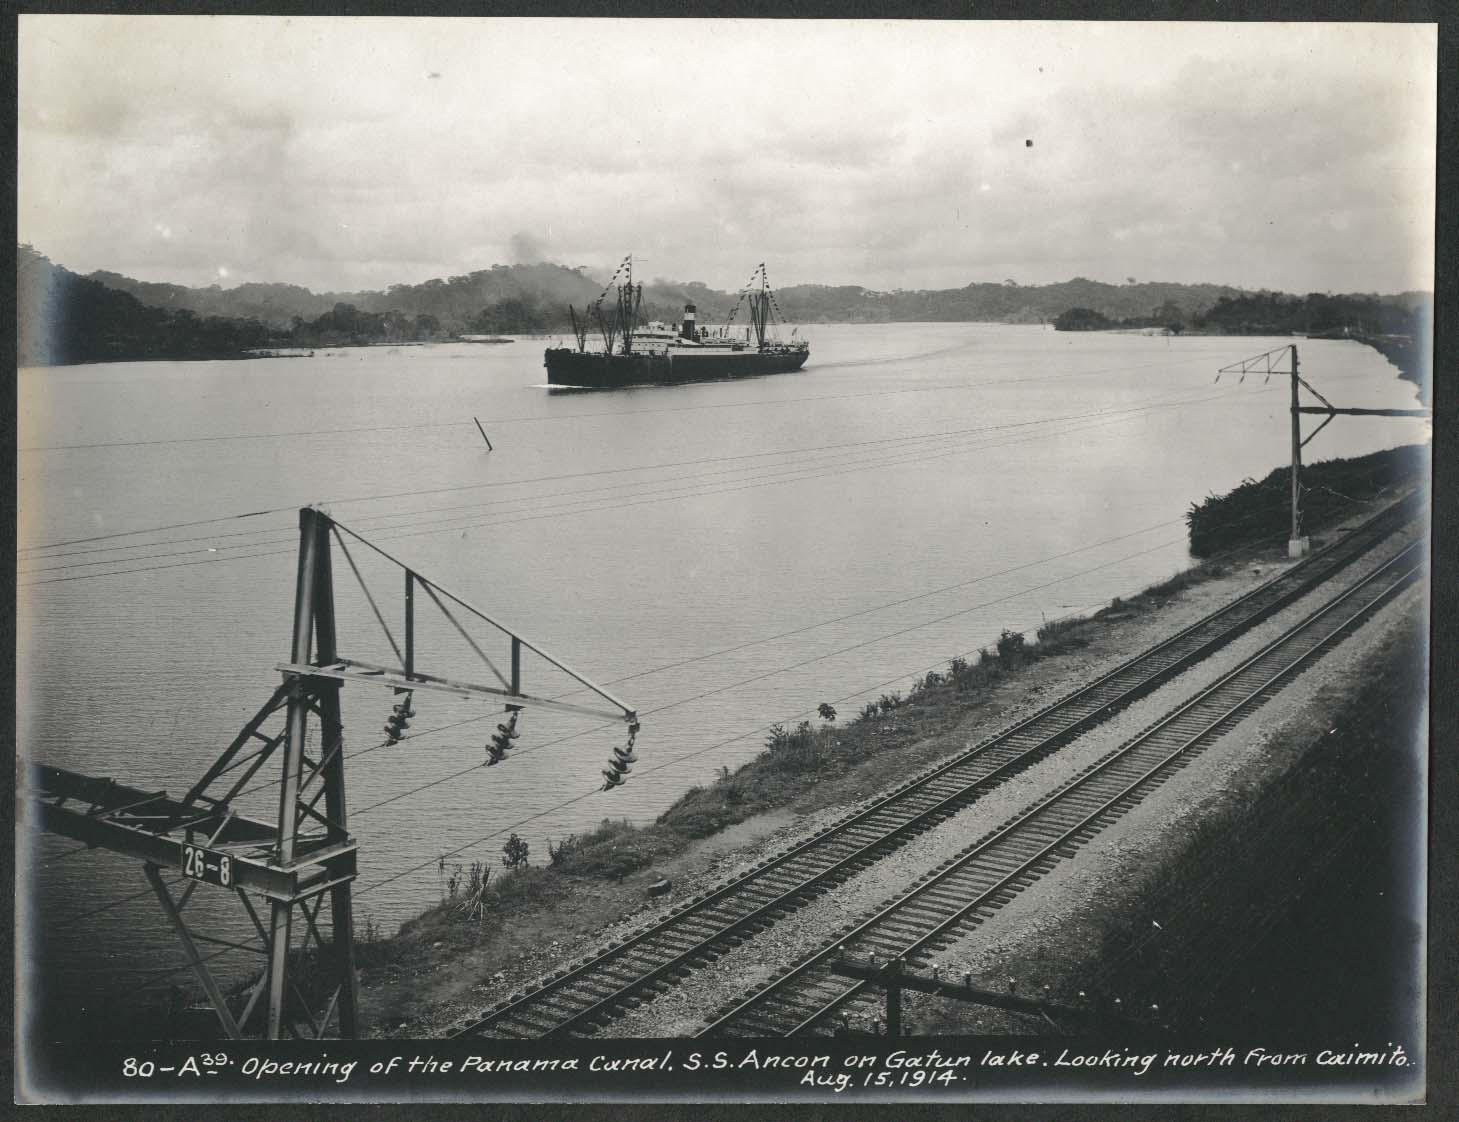 Image for Panama Canal photo 1914 Opening of canal S S Ancon Gatun Lake N from Caimito